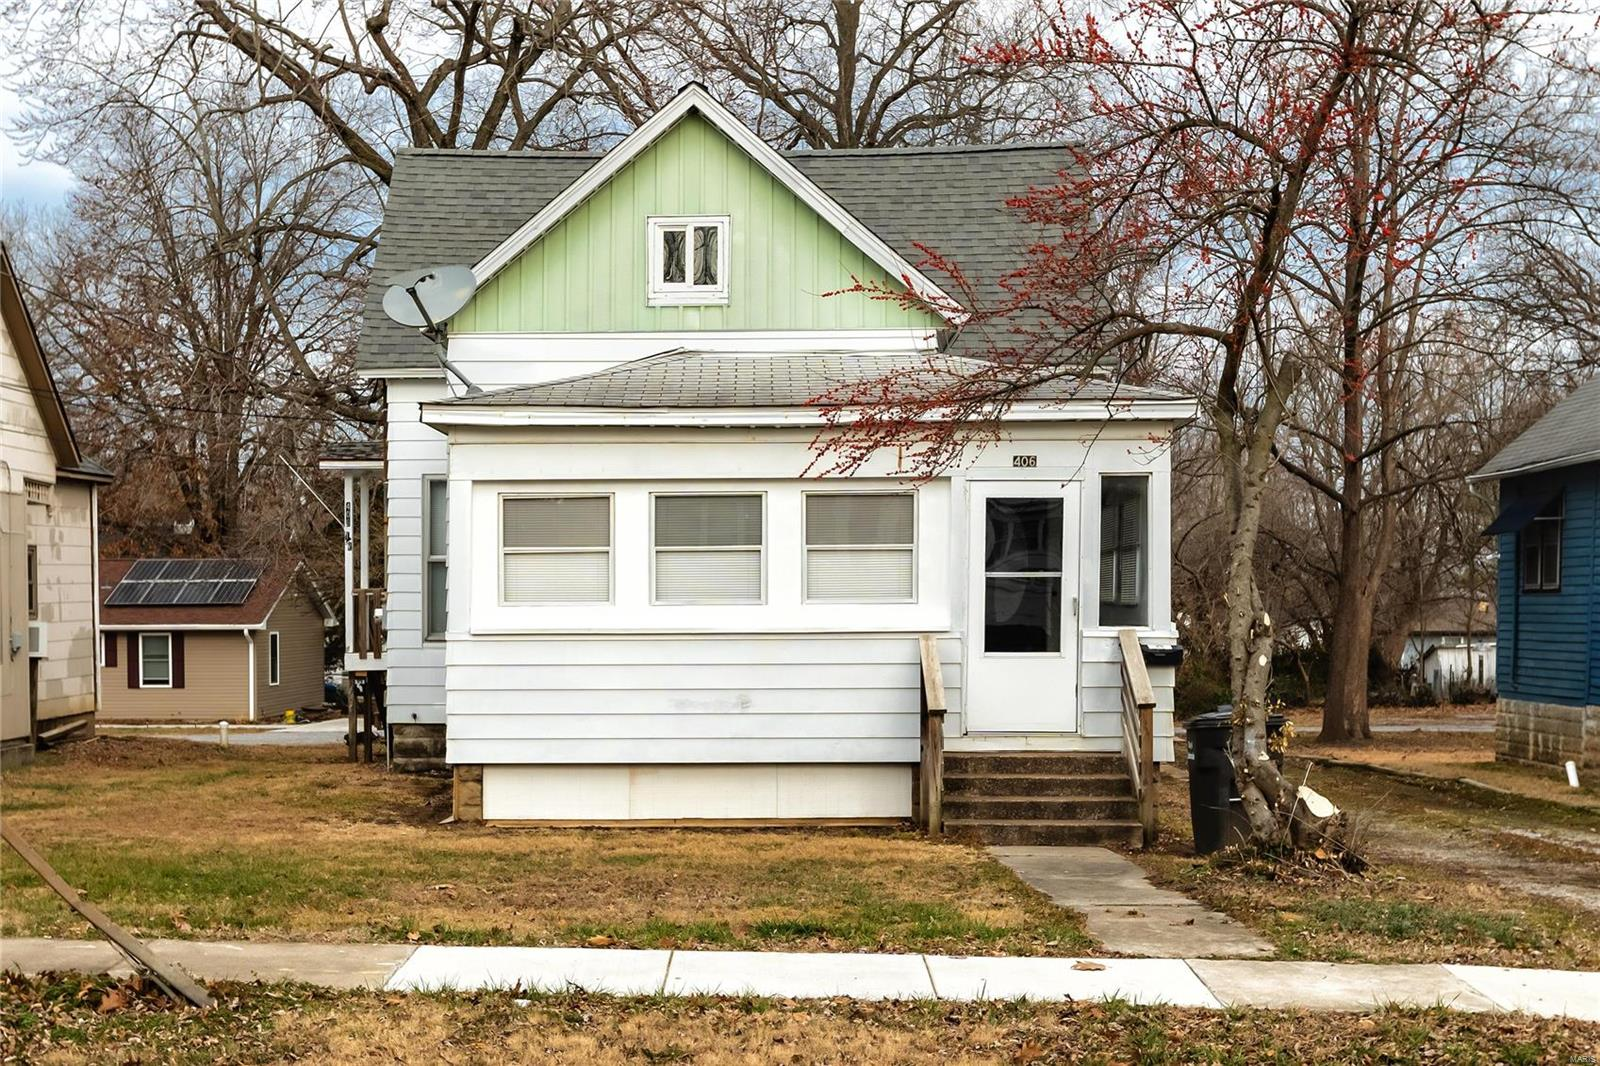 406 W Sycamore Street Property Photo - Carbondale, IL real estate listing